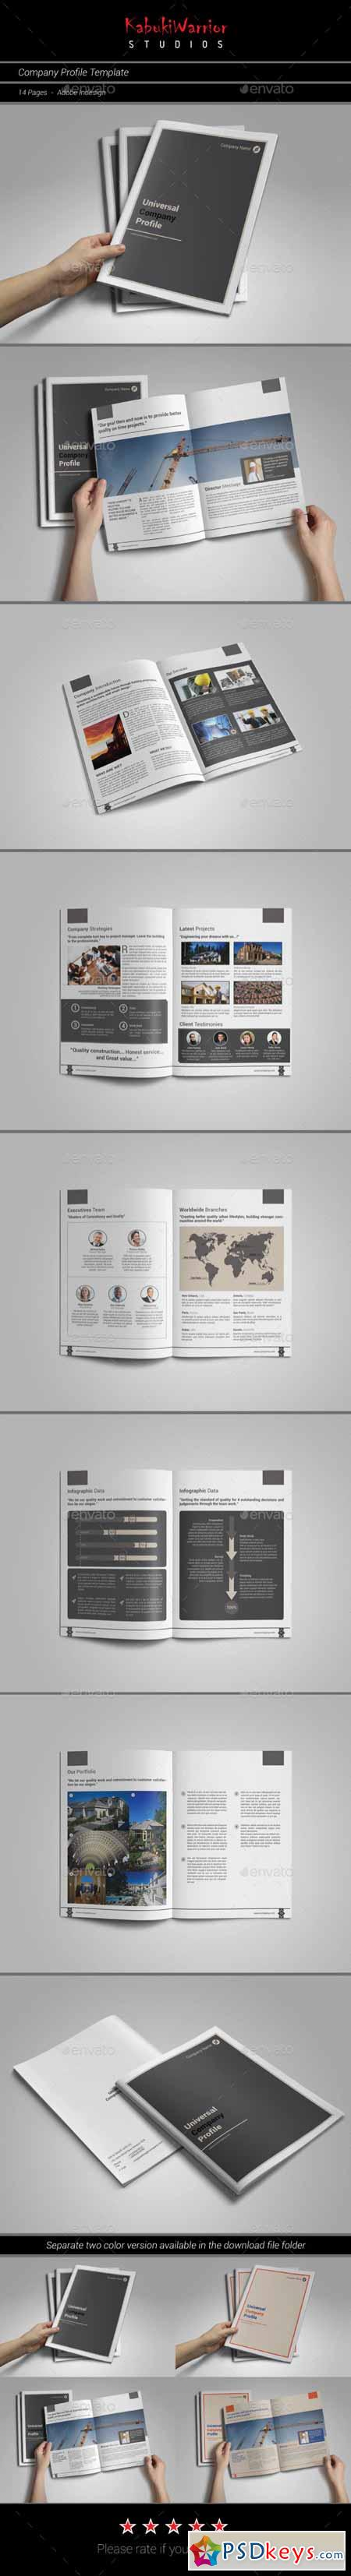 Company Profile Template 11285004 » Free Download Photoshop Vector ...